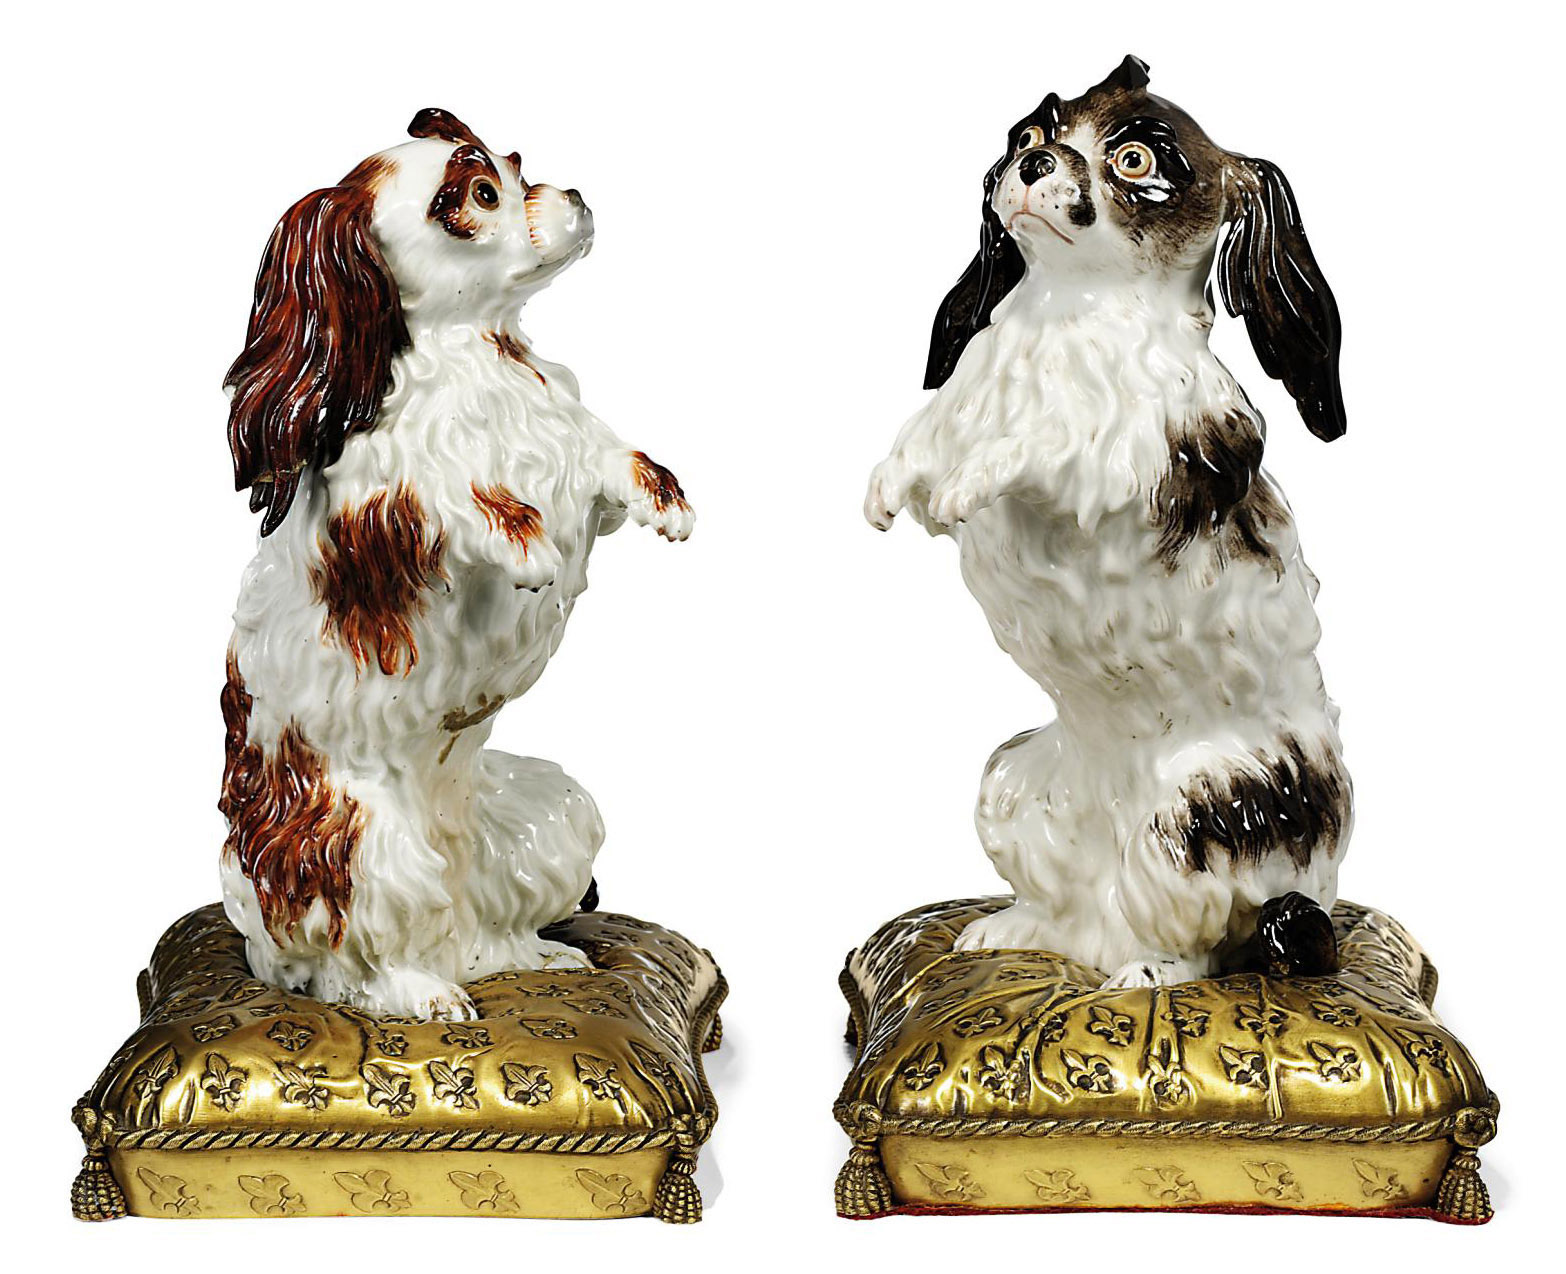 A PAIR OF ORMOLU-MOUNTED CONTINENTAL MODELS OF BOLOGNESE HOUNDS